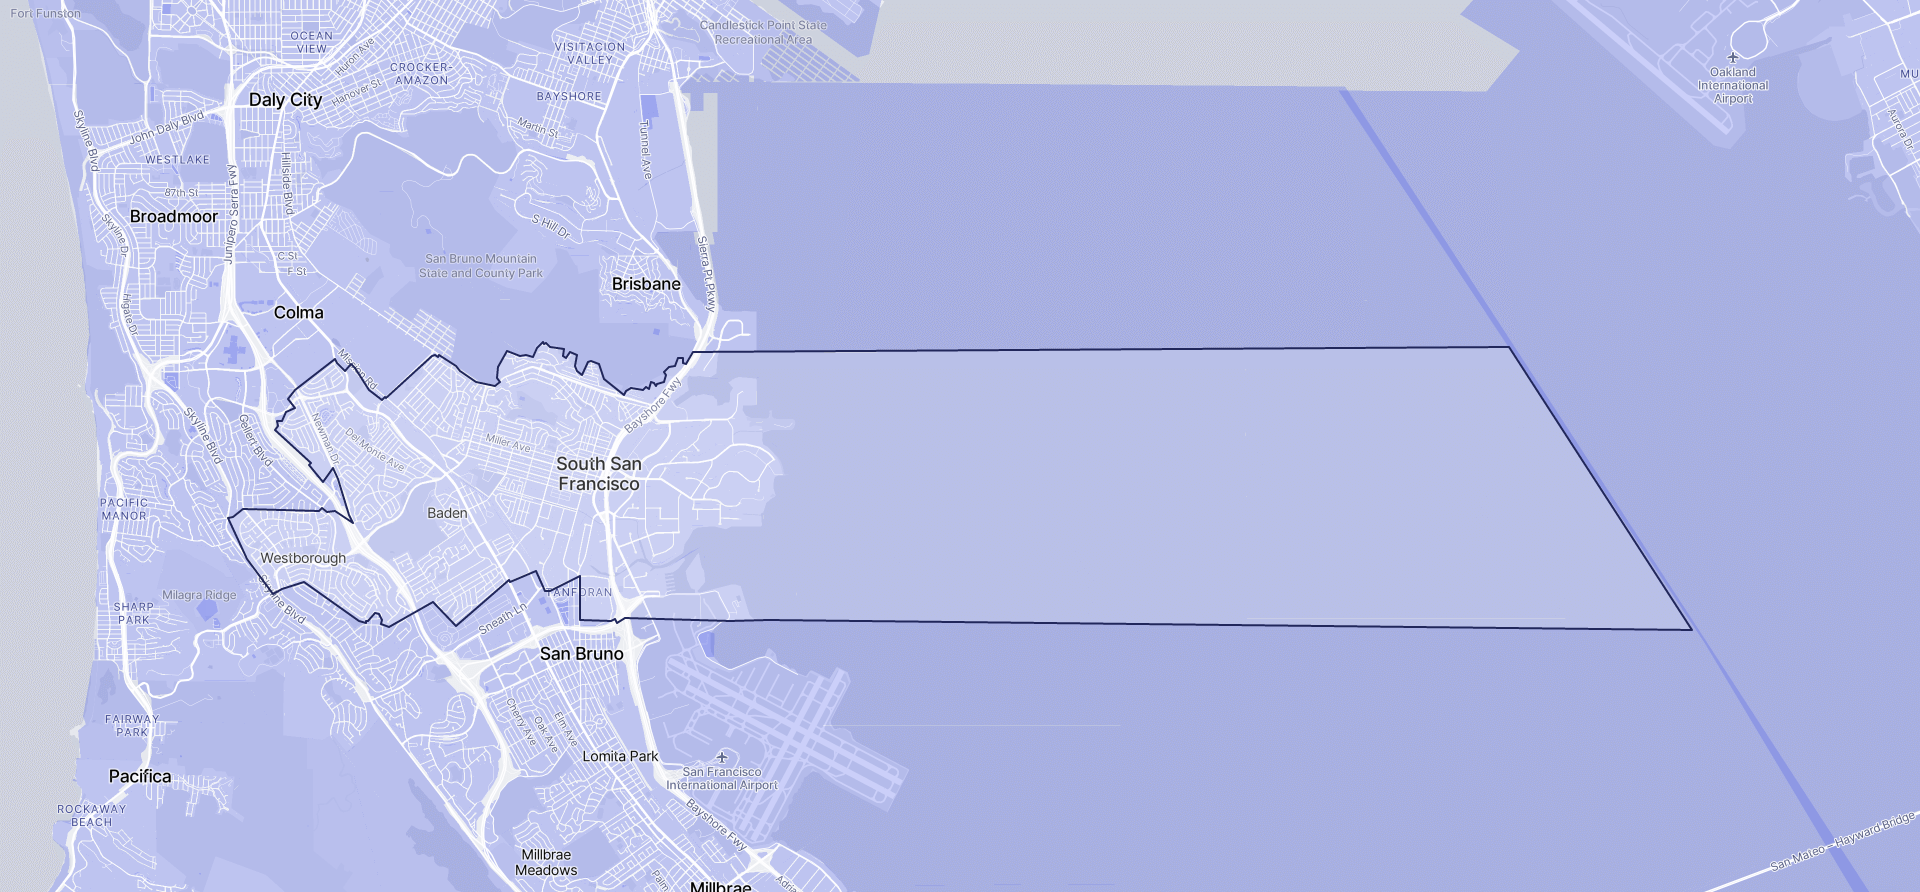 Image of South San Francisco boundaries on a map.